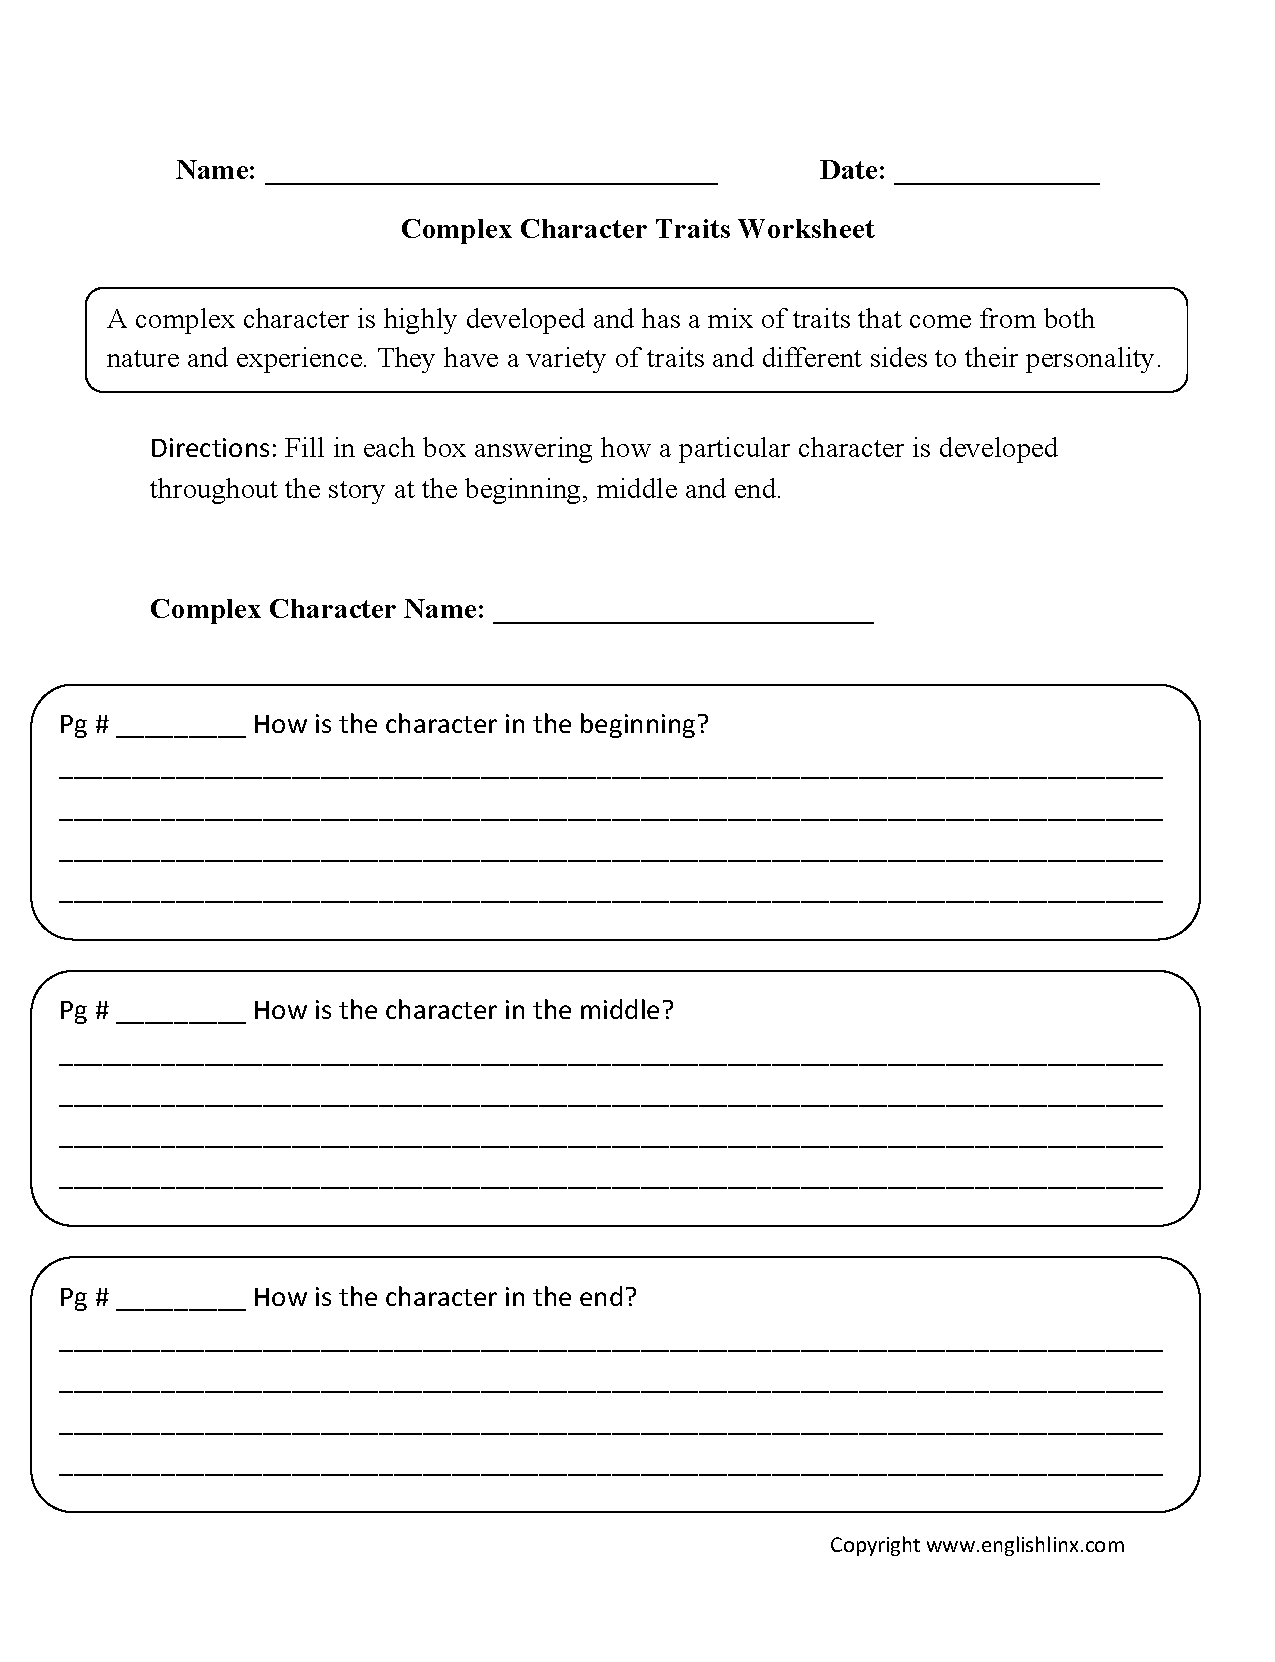 Printables Character Traits Worksheets reading worksheets character traits complex worksheets